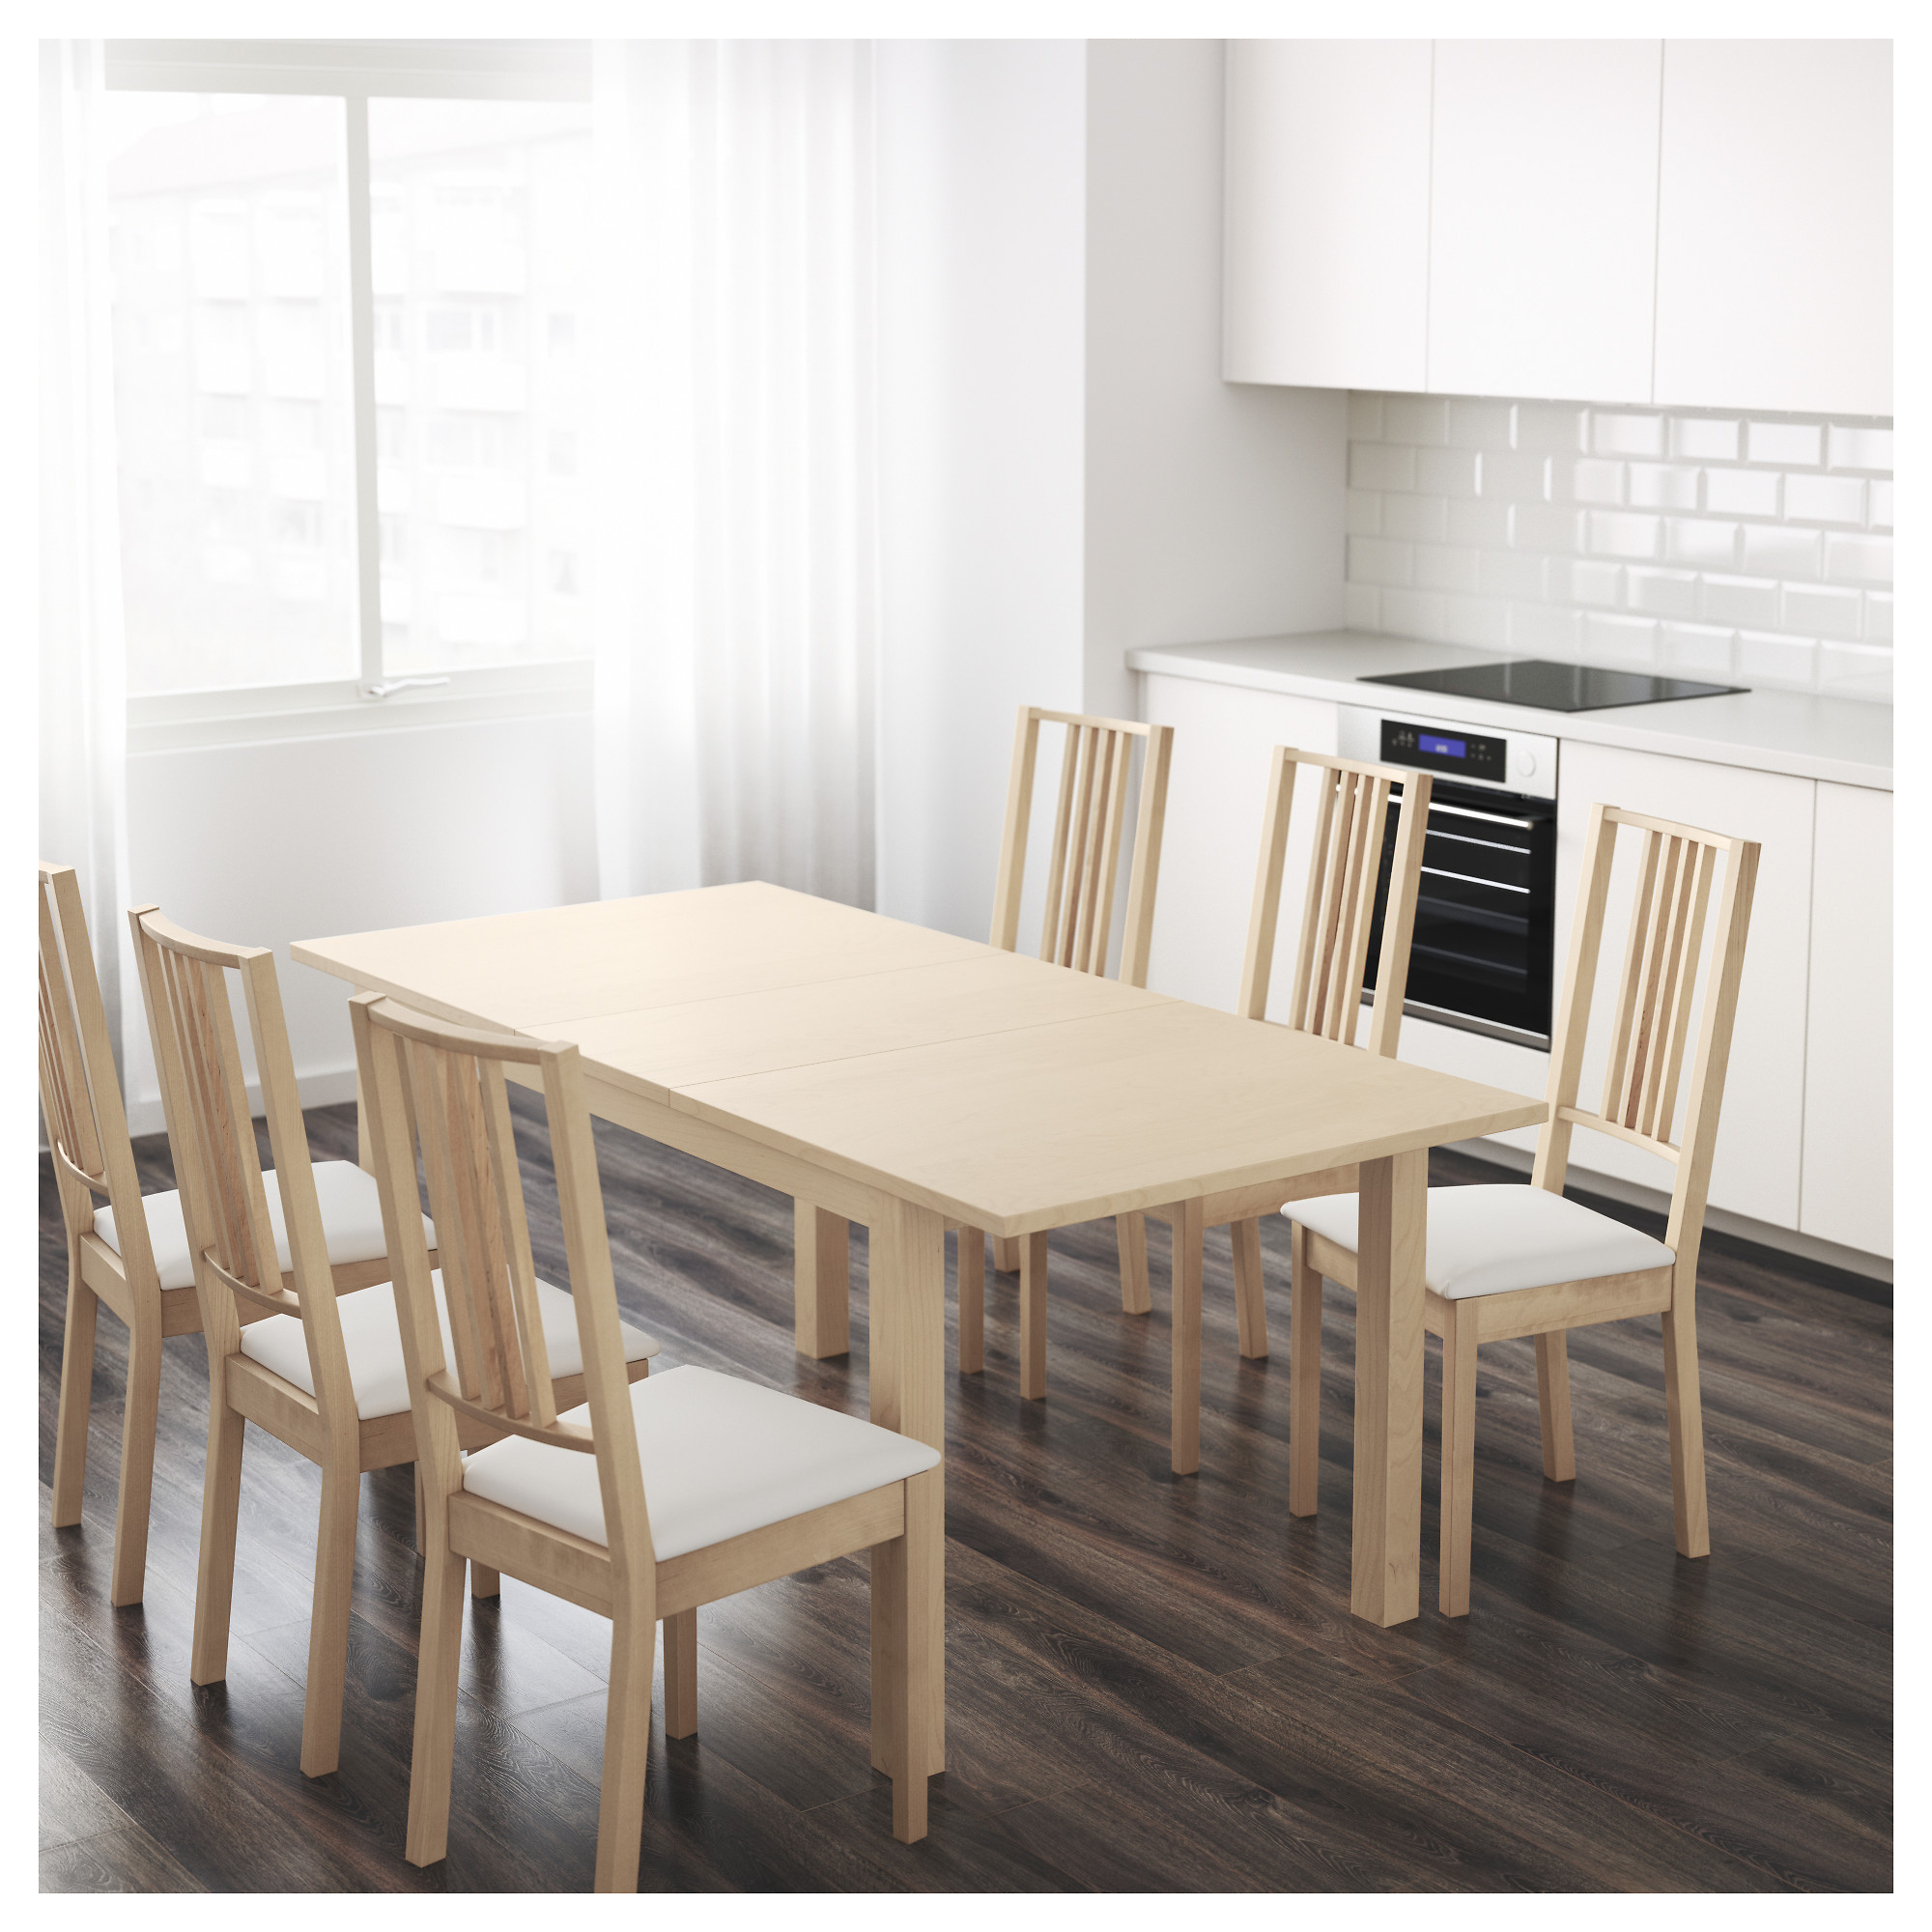 Extending Dining Room Table Endearing Bjursta Extendable Table  Brown  Ikea Design Inspiration